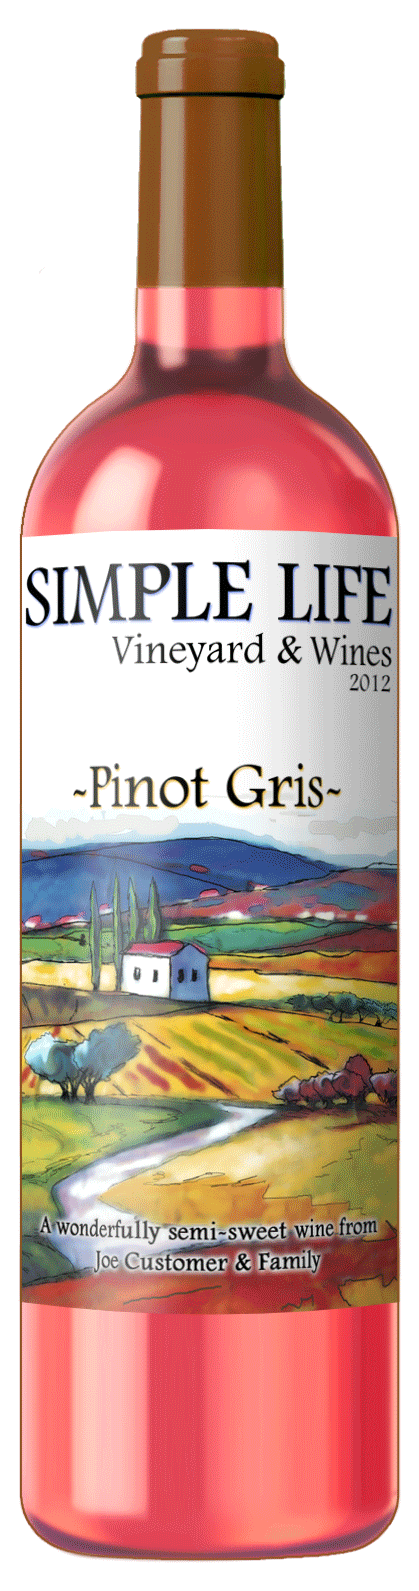 custom wine label with image of rolling hills